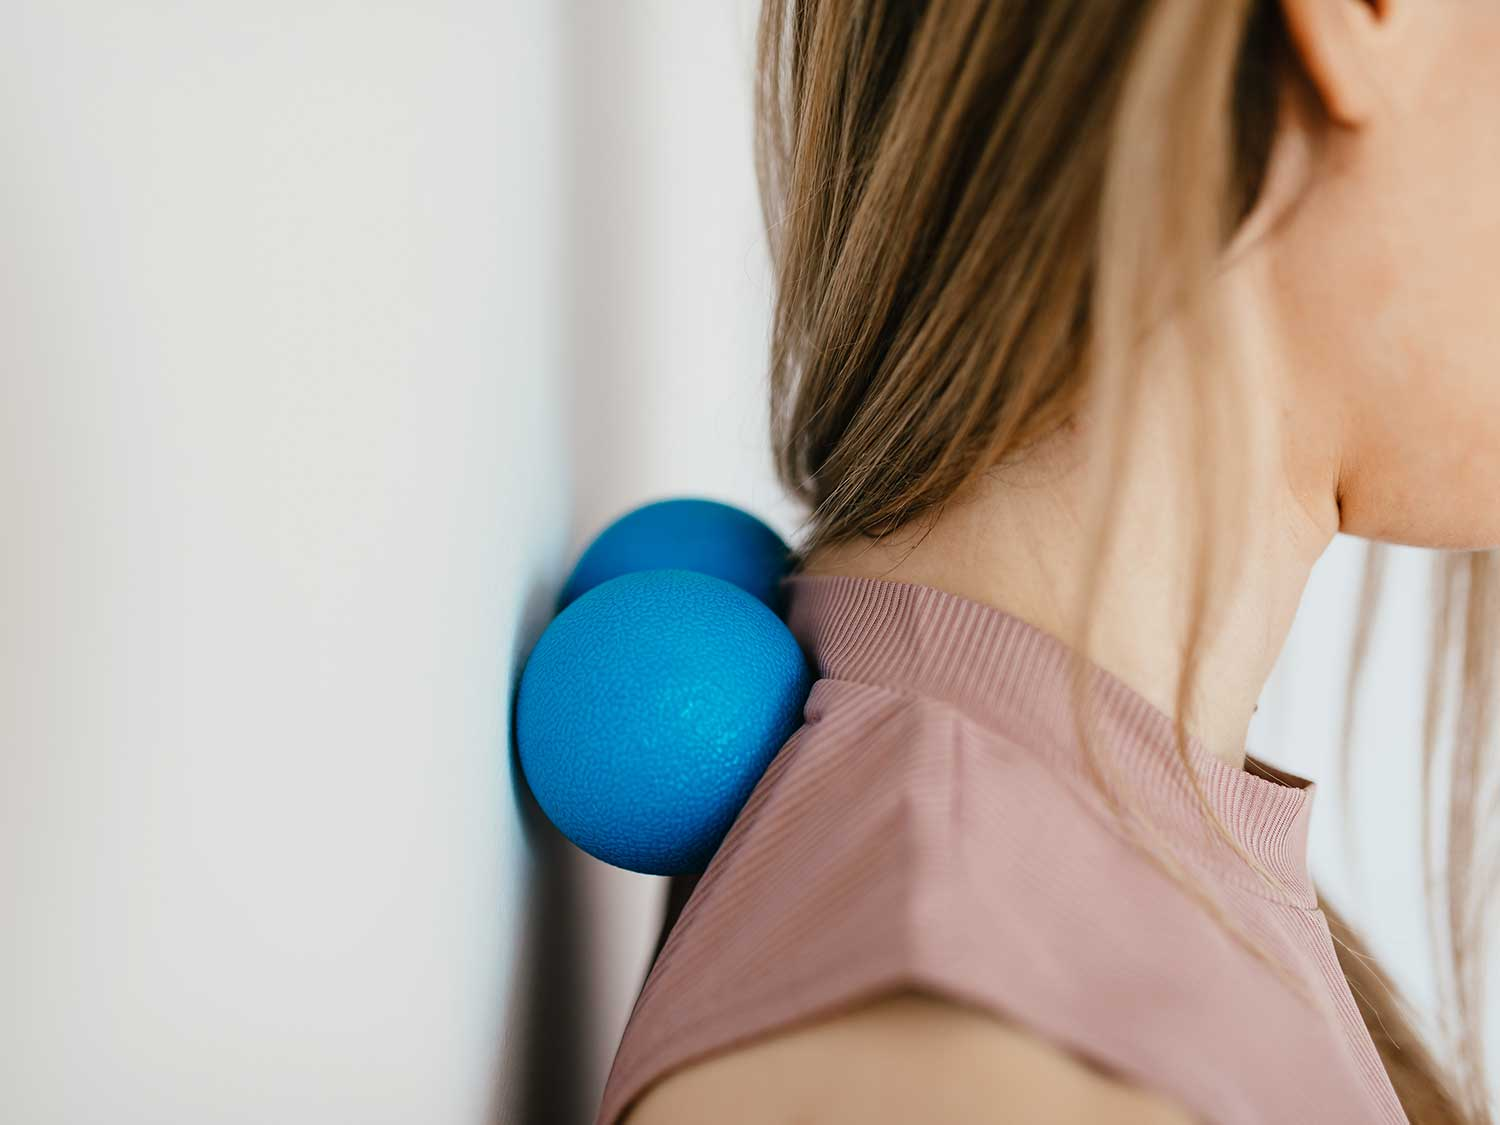 Woman massaging neck with massage balls against wall.